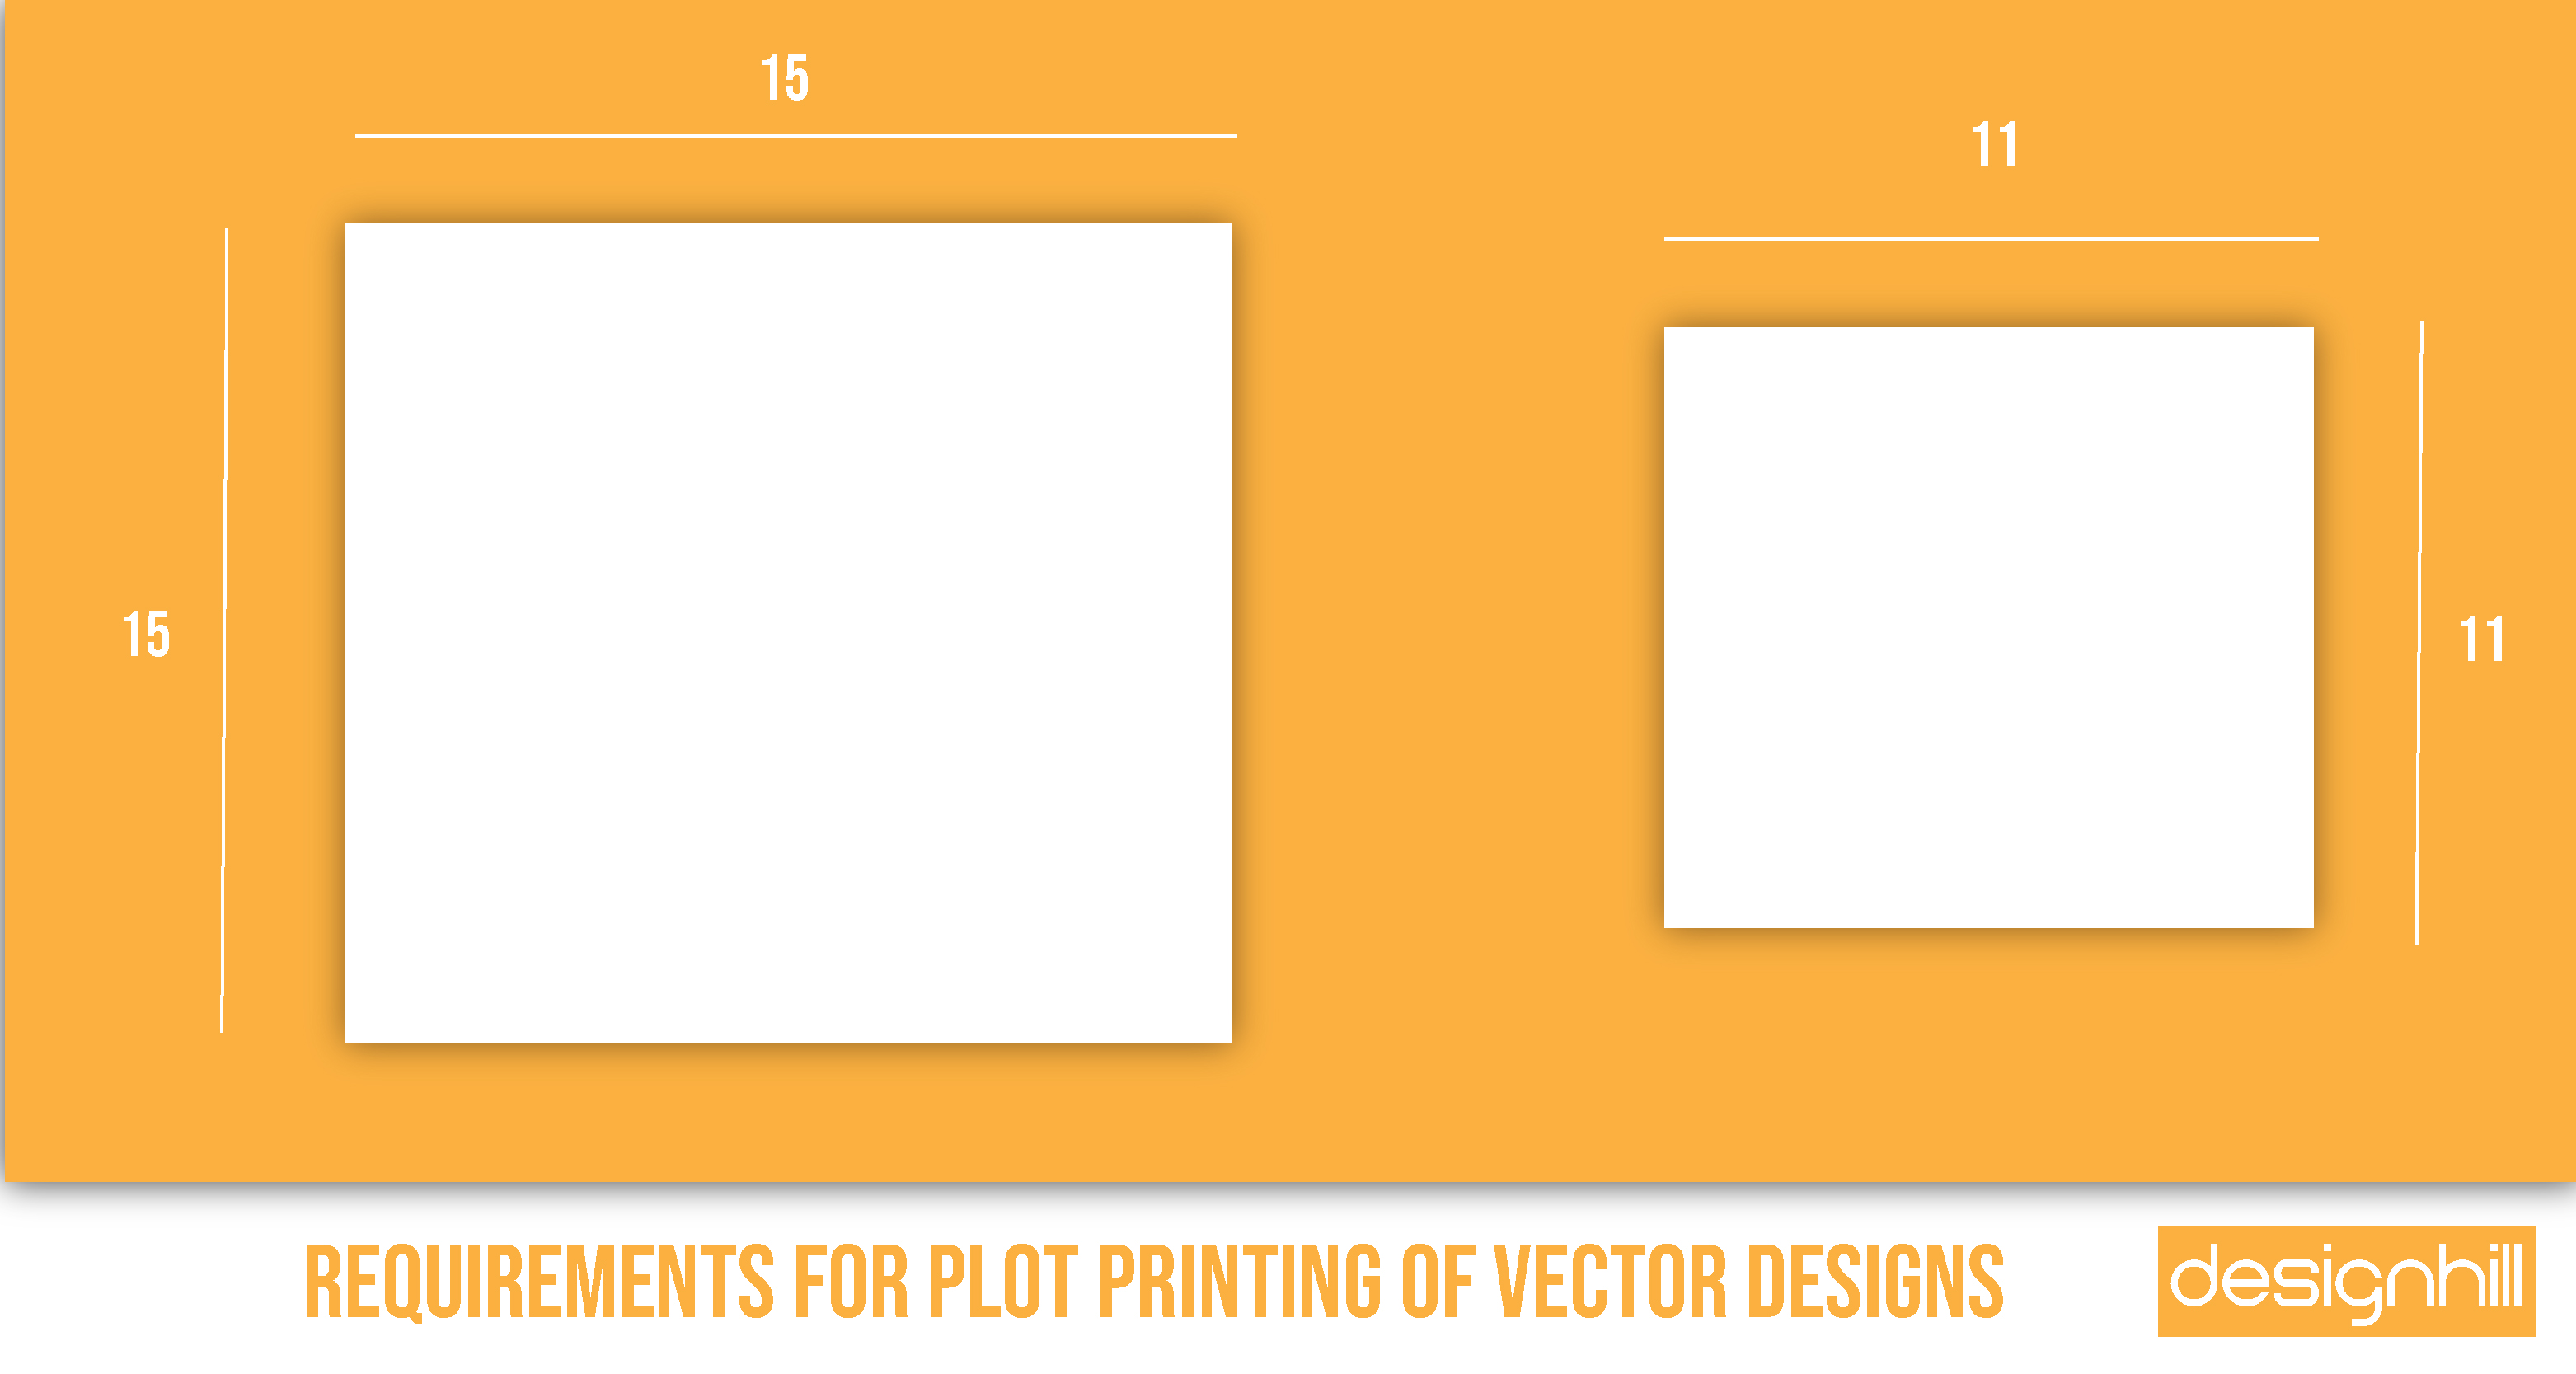 Requirements For Plot Printing Of Vector Designs